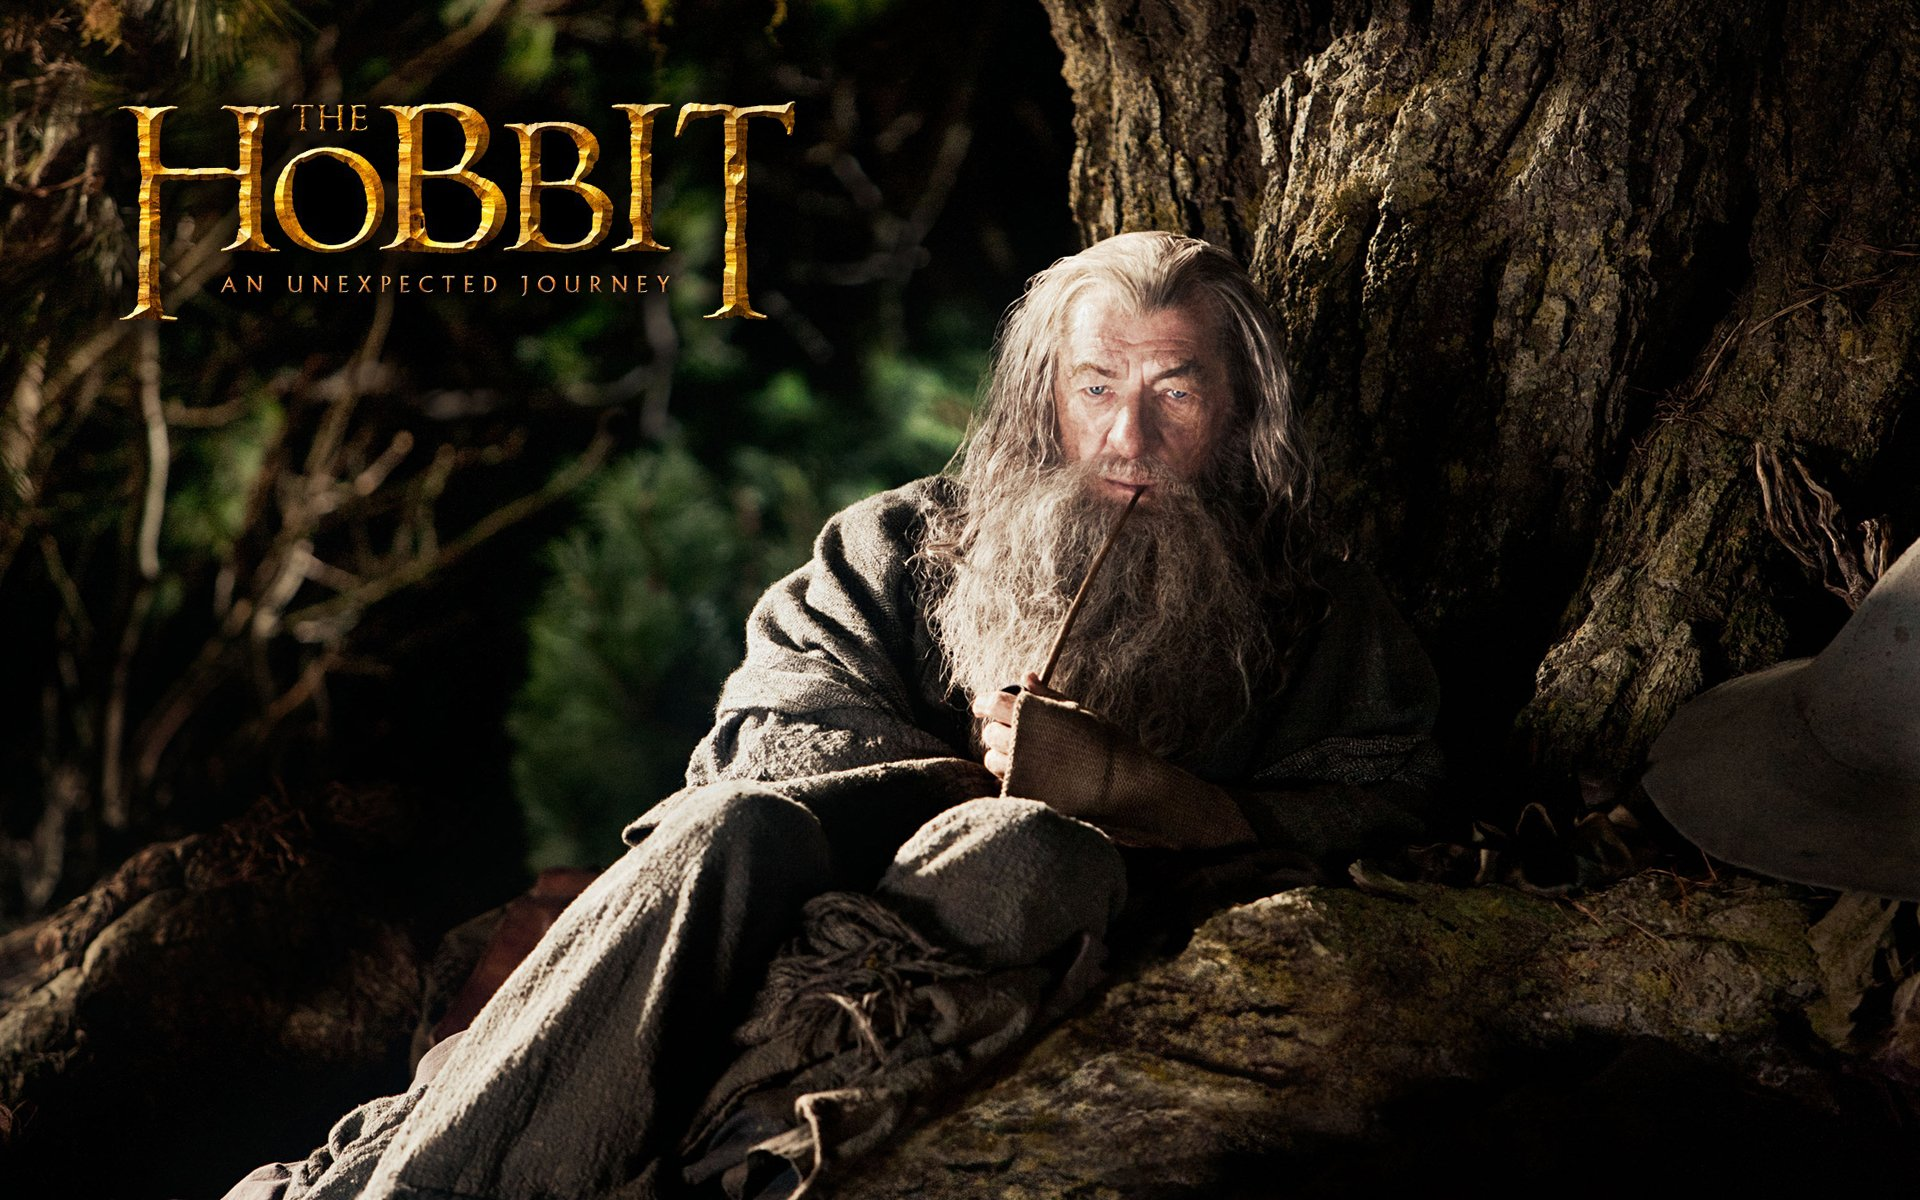 The Hobbit Wallpaper Images amp Pictures   Becuo 1920x1200